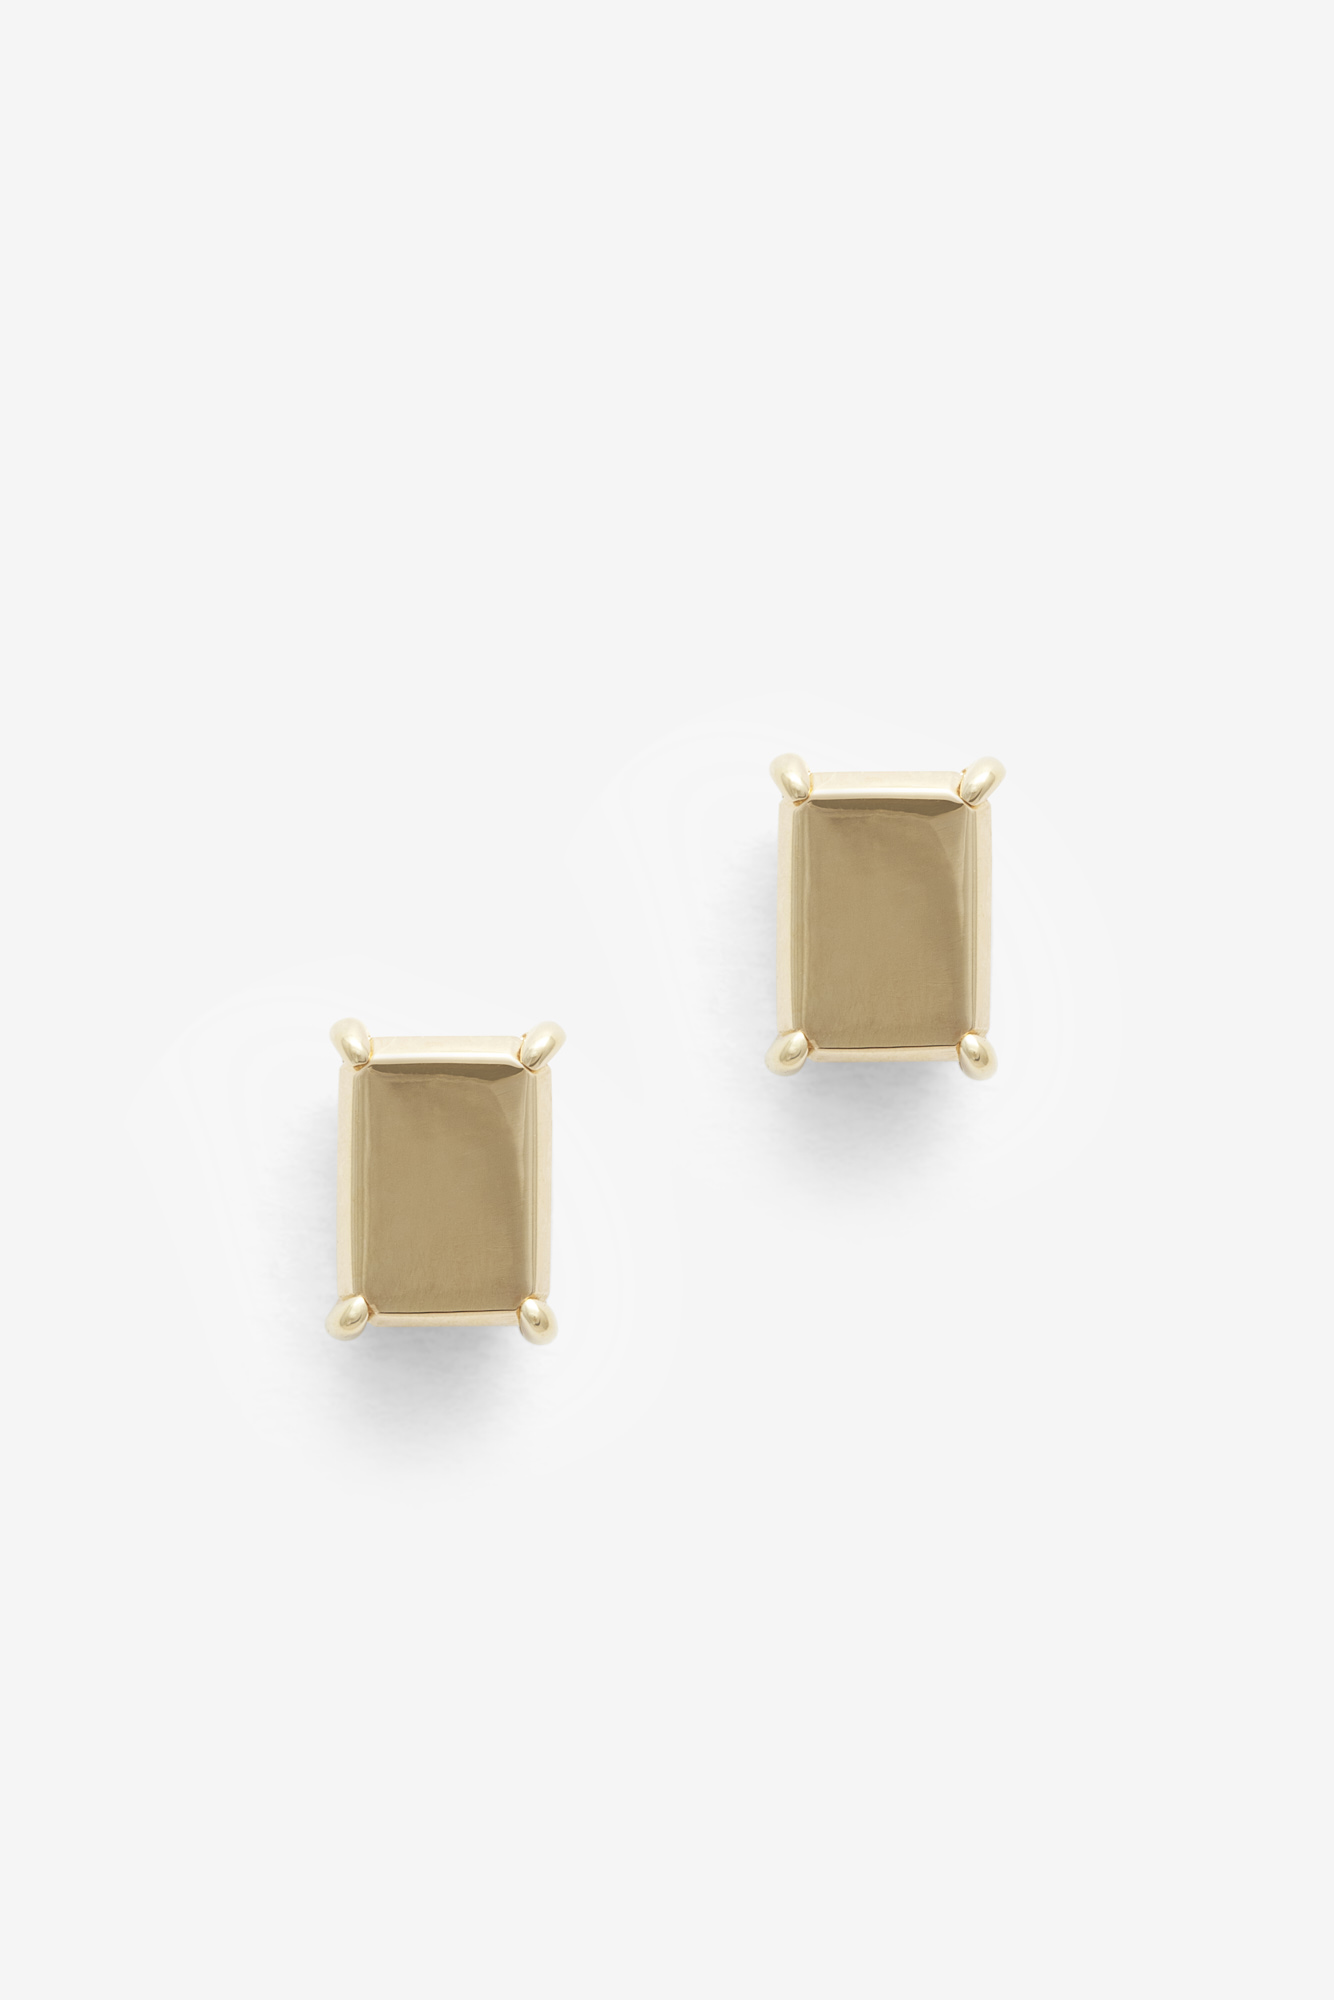 19-03-5-1-019-113-09_Baguette Earring_Gold Plated_03